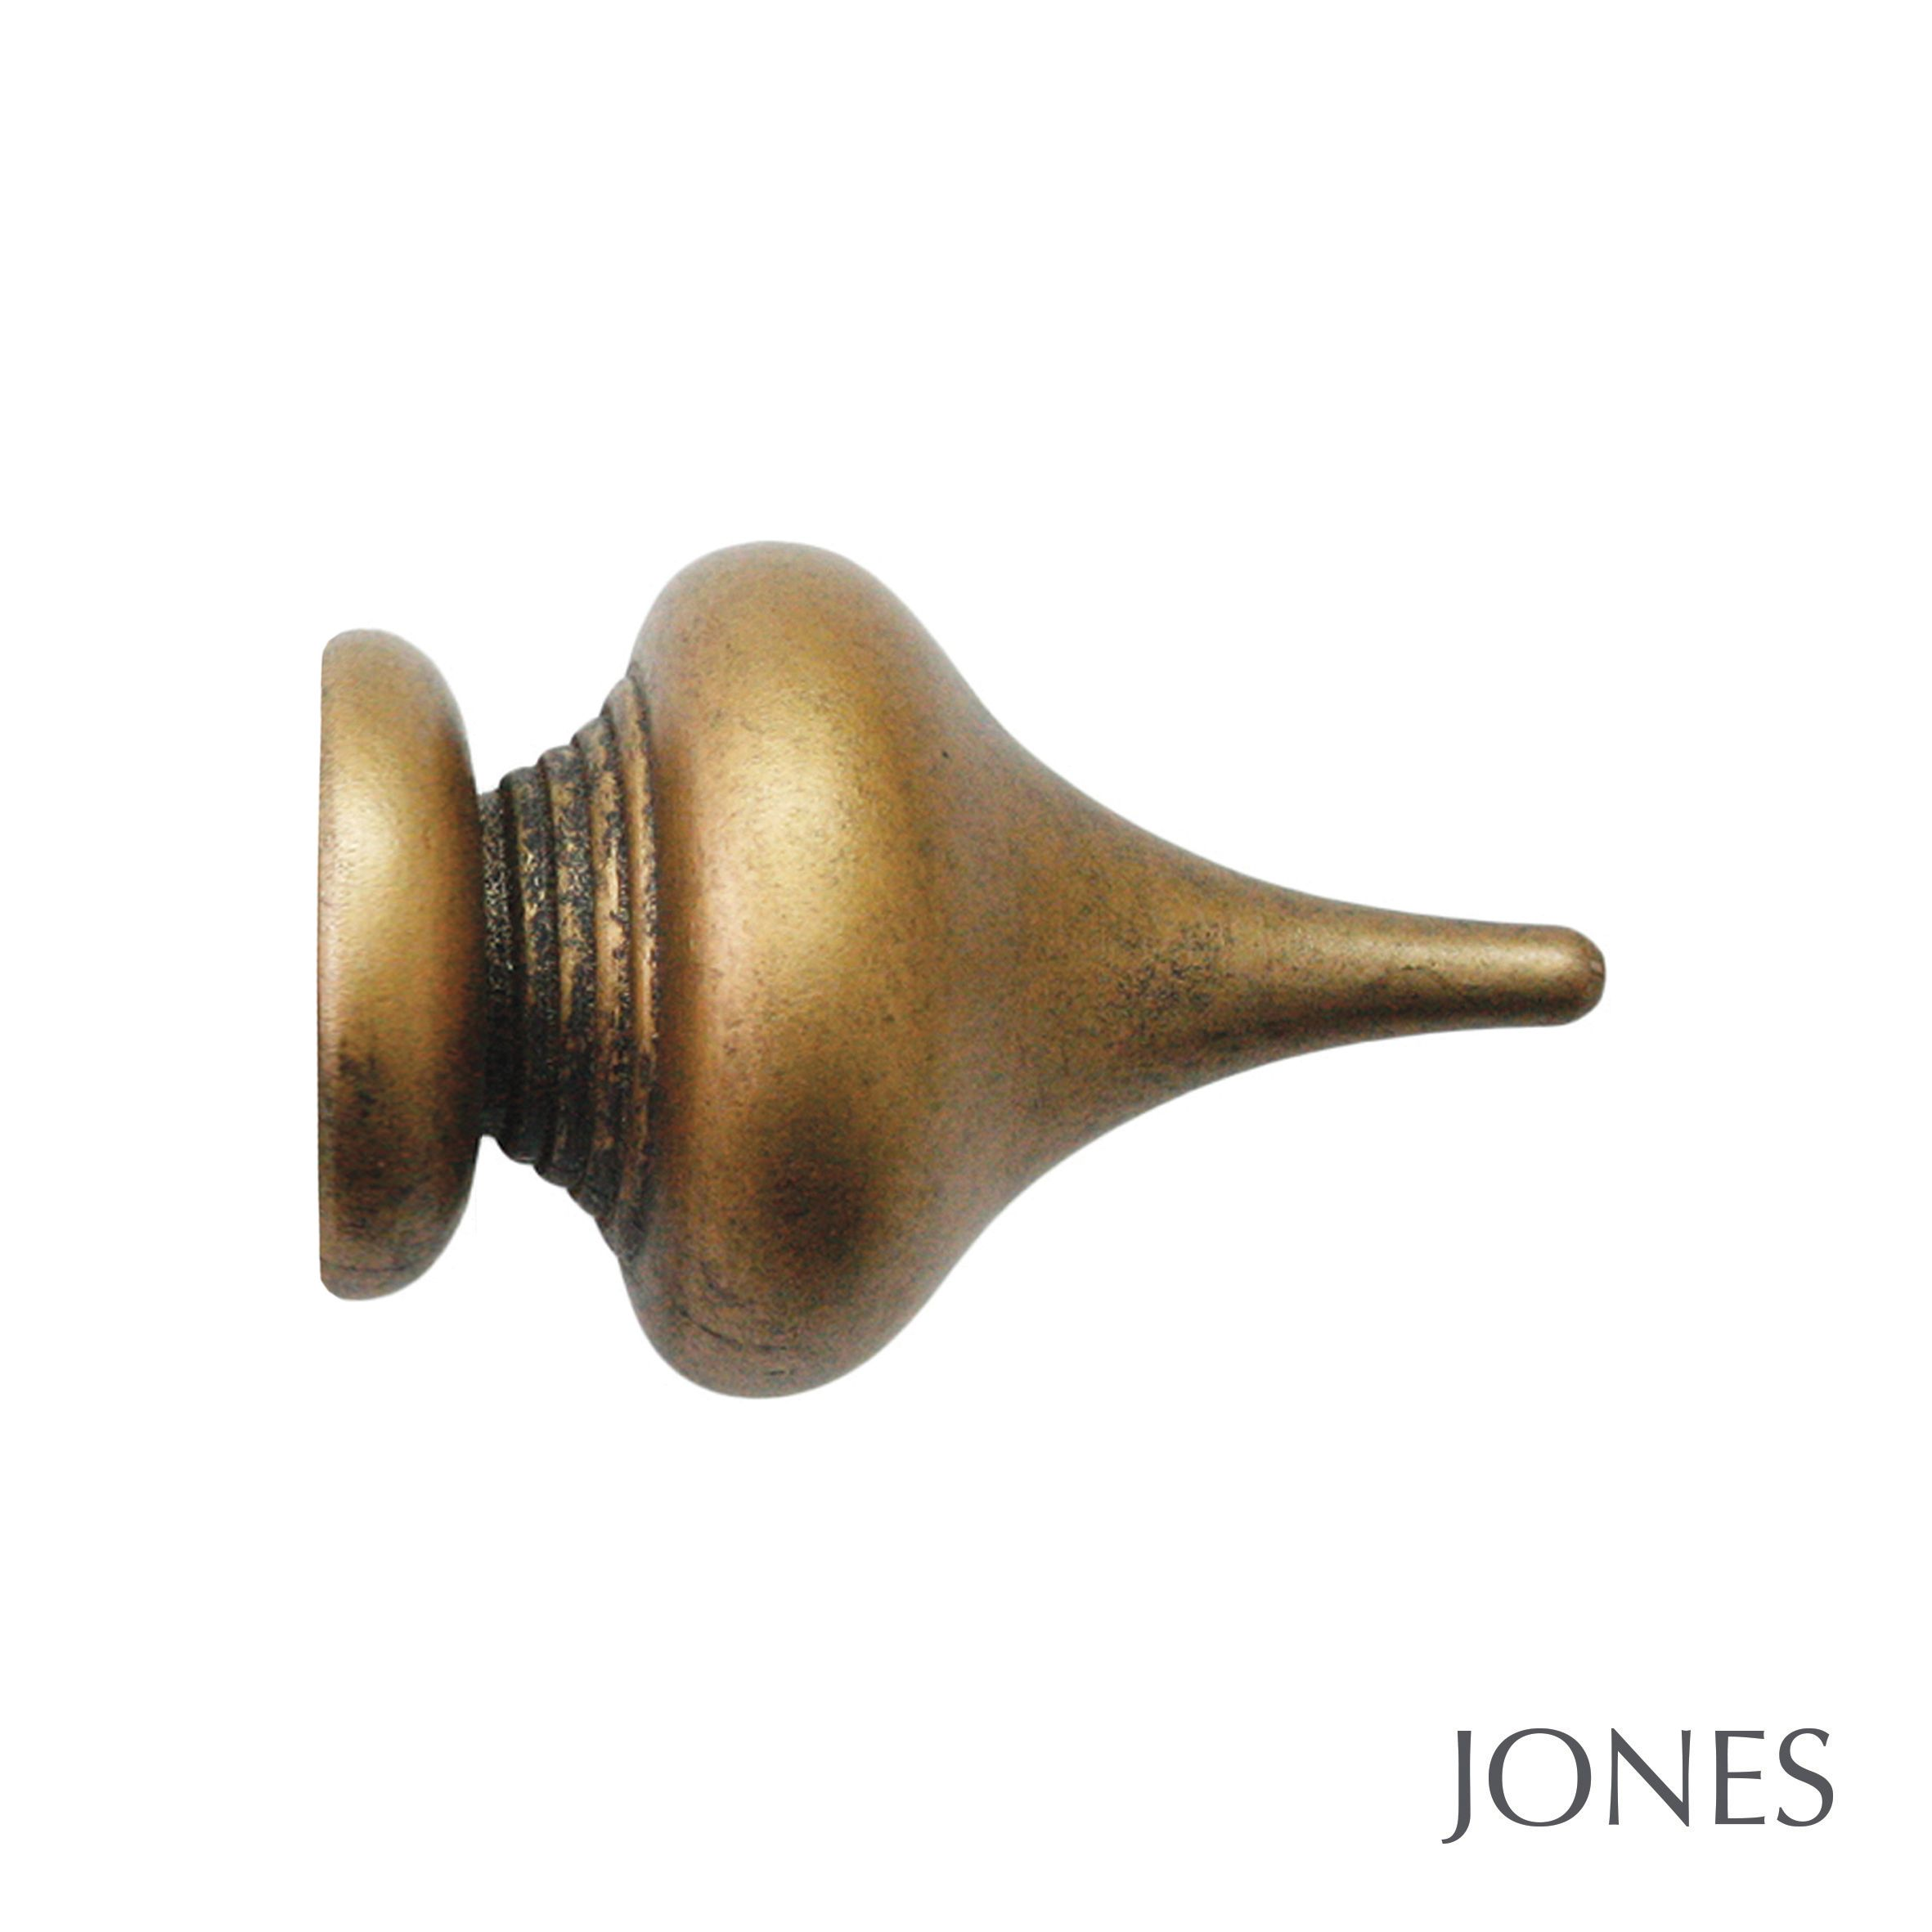 50mm Jones Florentine Minaret Finial antique gold